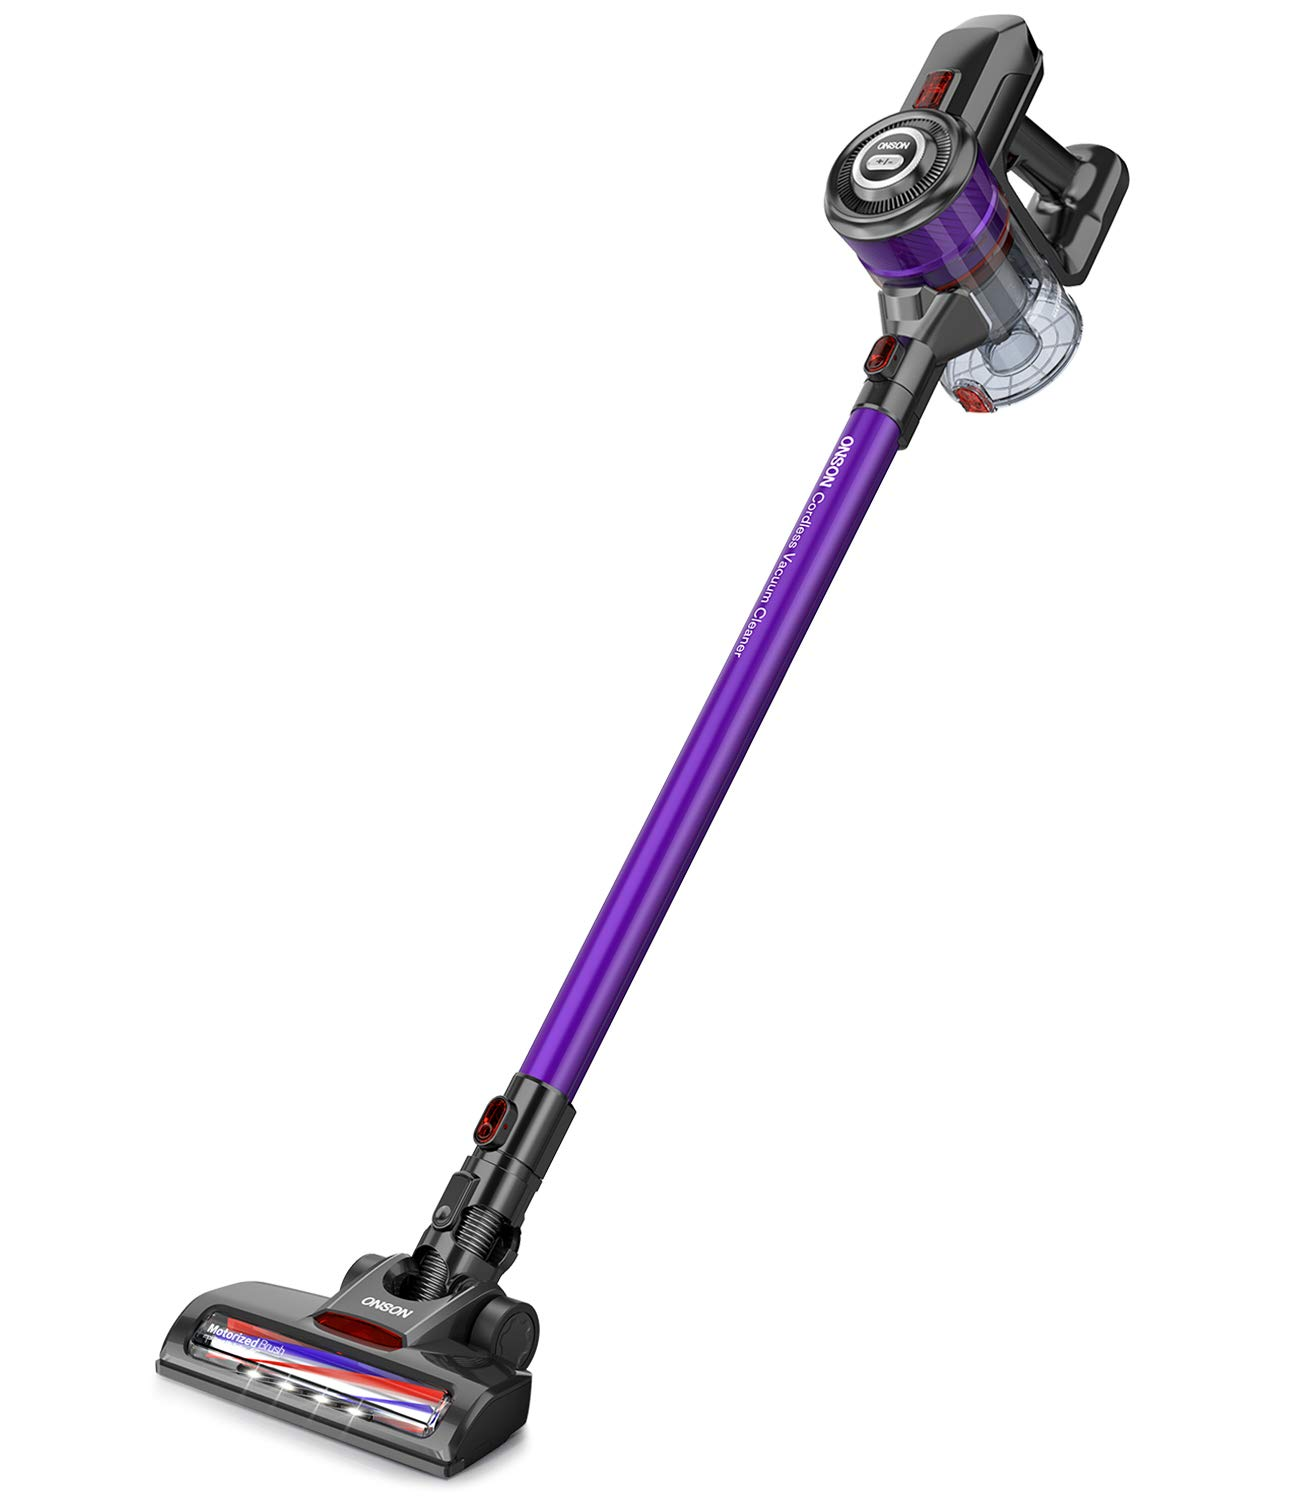 Cordless ONSON Powerful Lightweight Rechargeable